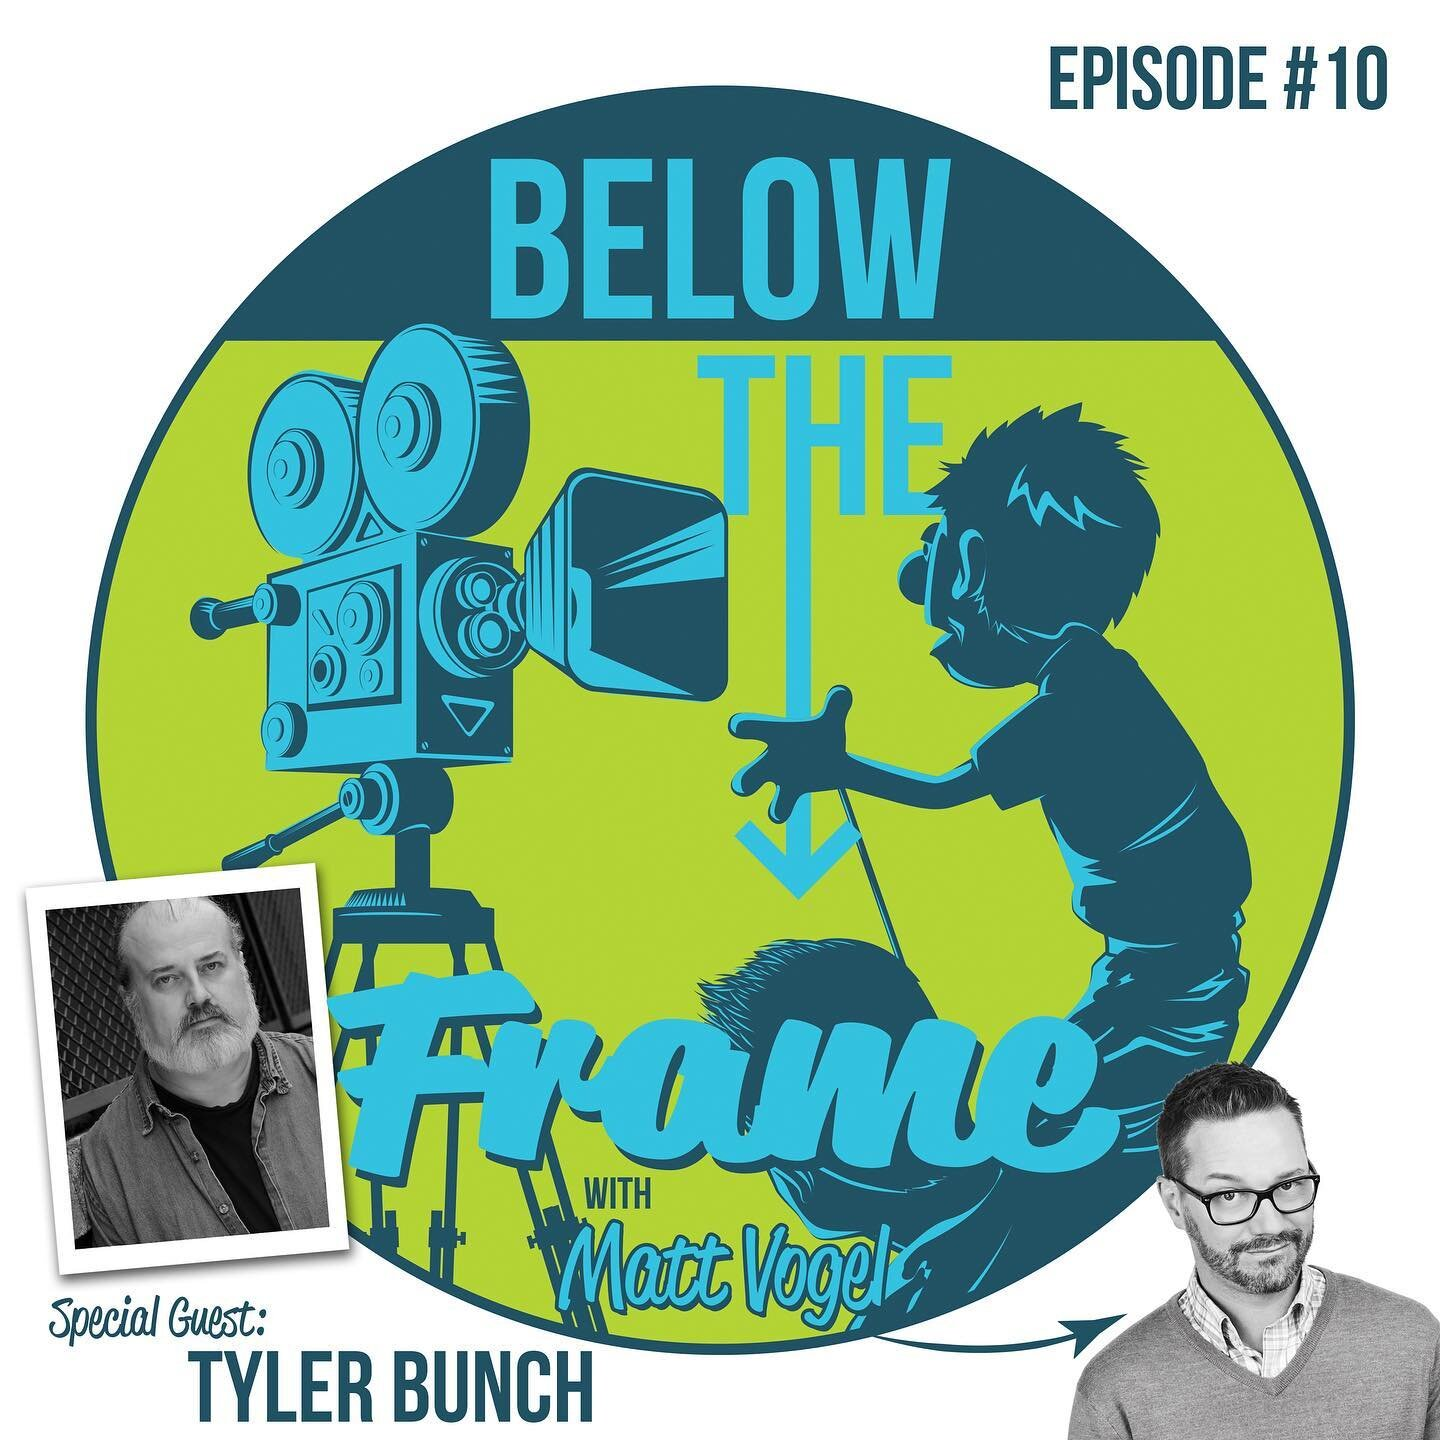 "On this episode of Below the Frame, I sit down with Sesame Street Muppet Performer Tyler Bunch (Louie) about growing up all over the country, performing puppets for The Disney Crew, monitor nights, and creating memorable characters.  We learn about the phrase ""Blue Skies"" and ask Sesame Street Performer Pam Arciero (Grundgetta) a question about NOT puppets. . . . @belowtheframe #muppetperformer #muppets #sesamestreet #podcasts #puppets #puppetry #puppeteer #dreamjob #mattvogel #tylerbunch #pamarciero #grundgetta #louie #elmosdad @tylerthebunch"